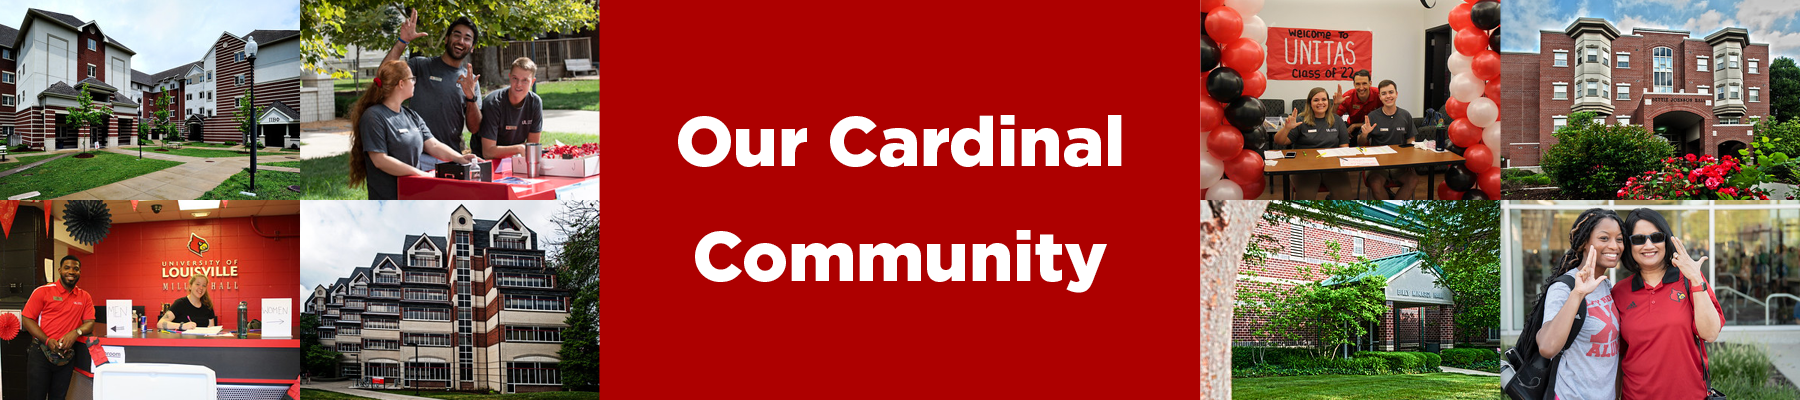 our cardinal community